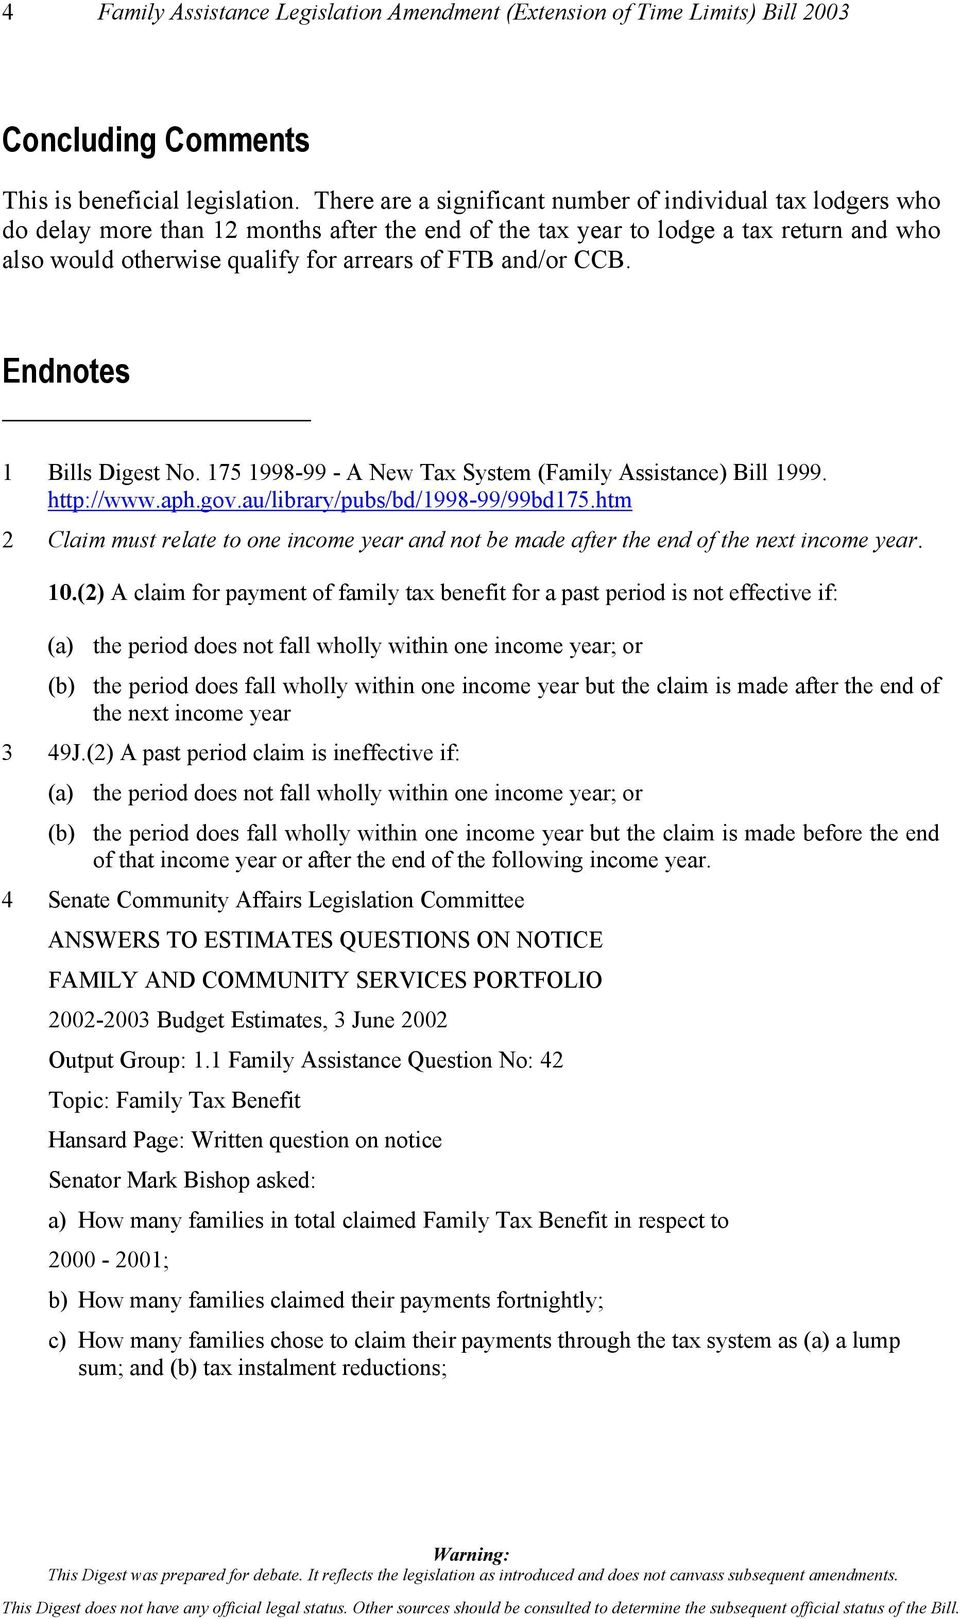 and/or CCB. Endnotes 1 Bills Digest No. 175 1998-99 - A New Tax System (Family Assistance) Bill 1999. http://www.aph.gov.au/library/pubs/bd/1998-99/99bd175.